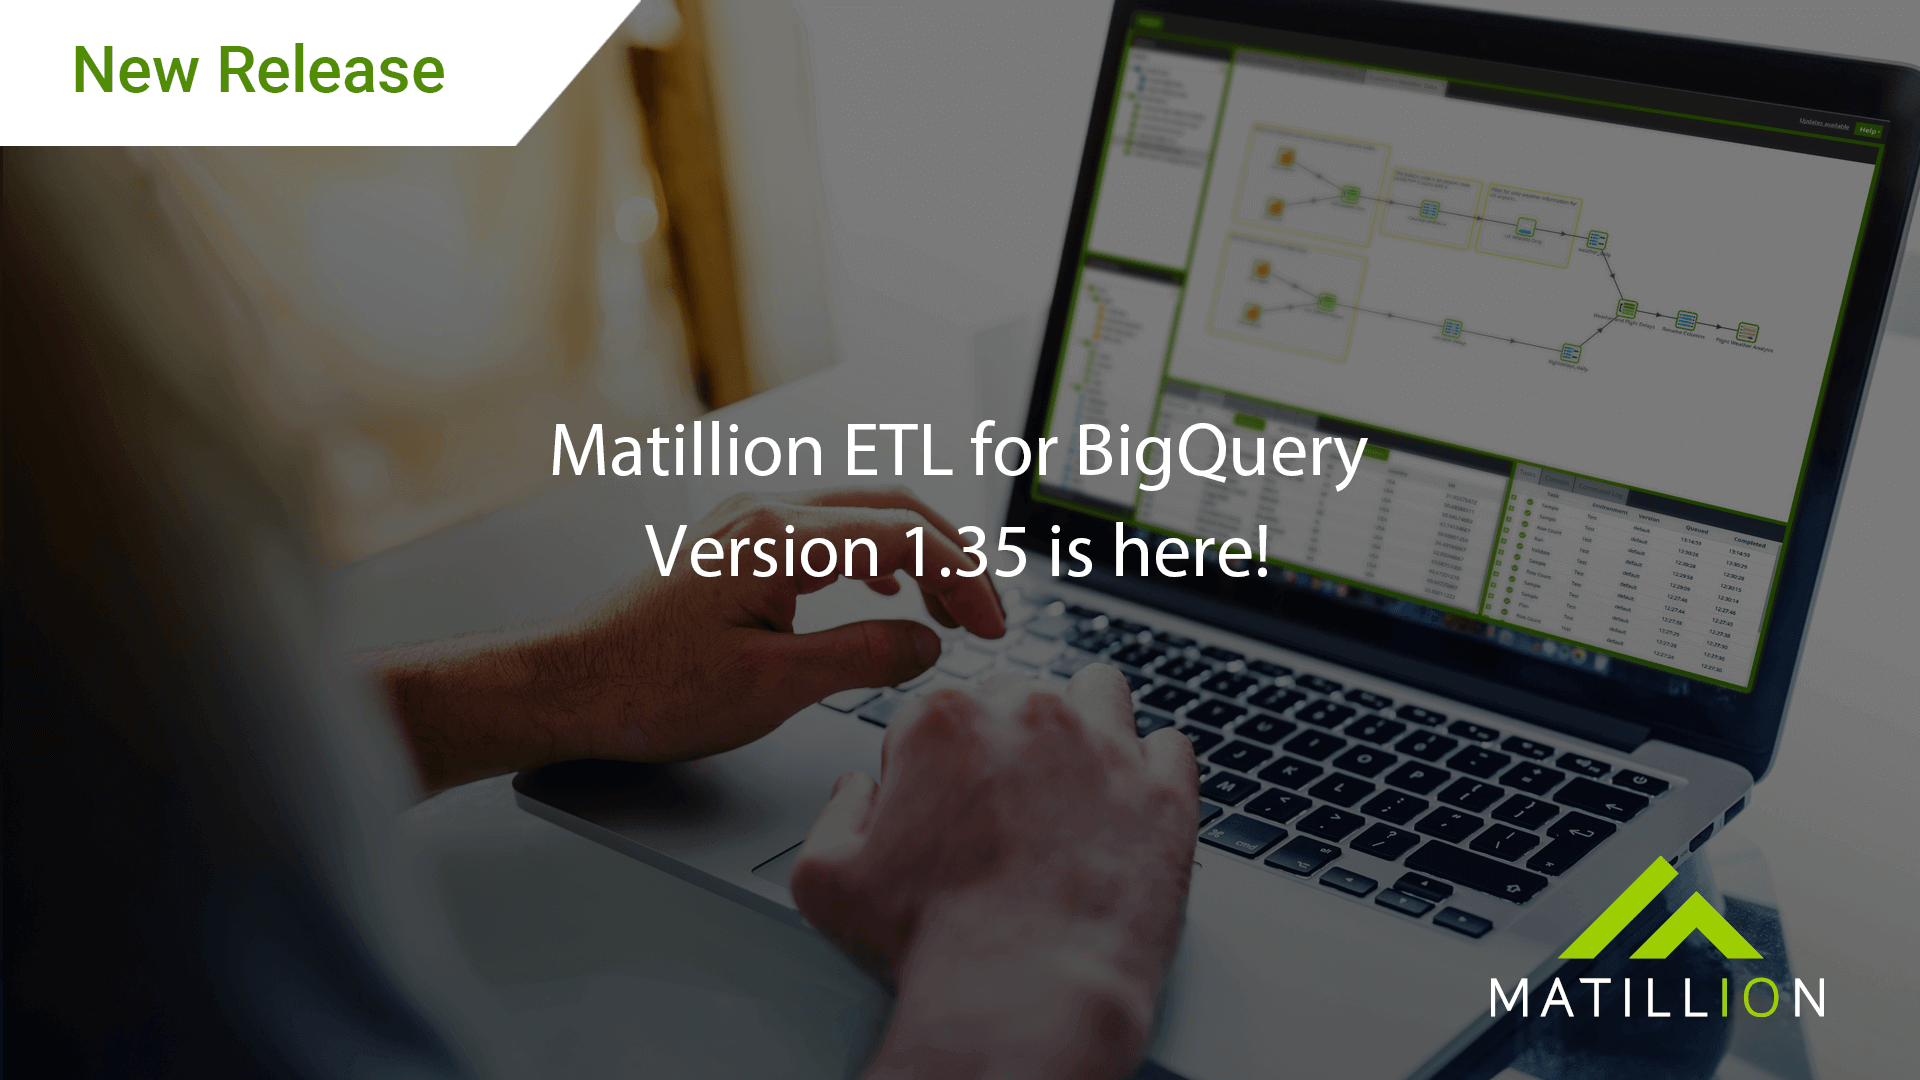 matillion etl for bigquery 1.35 version release